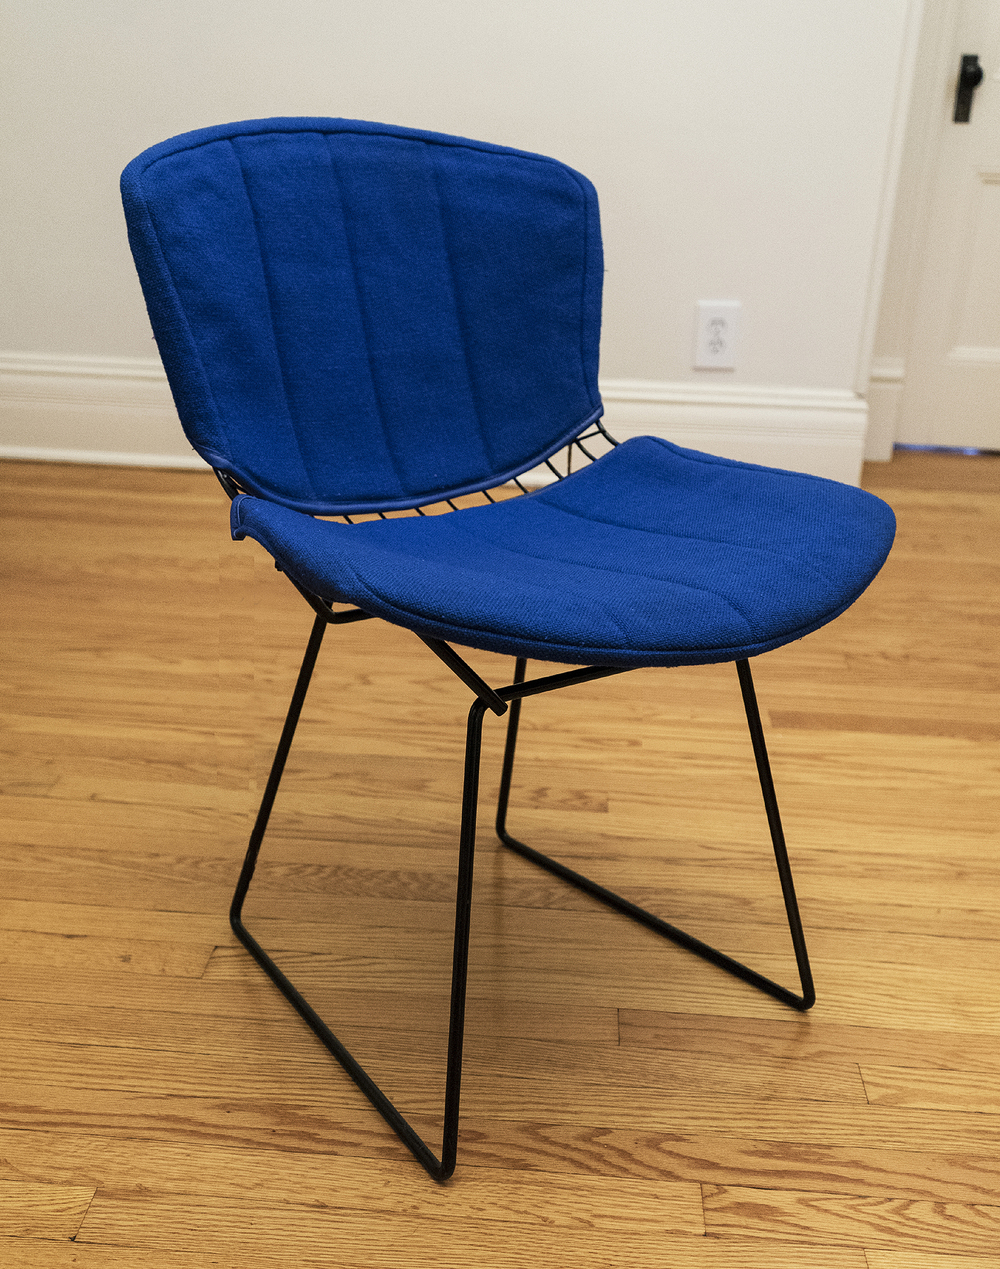 Original Harry Bertoia/Knoll Side Chairs